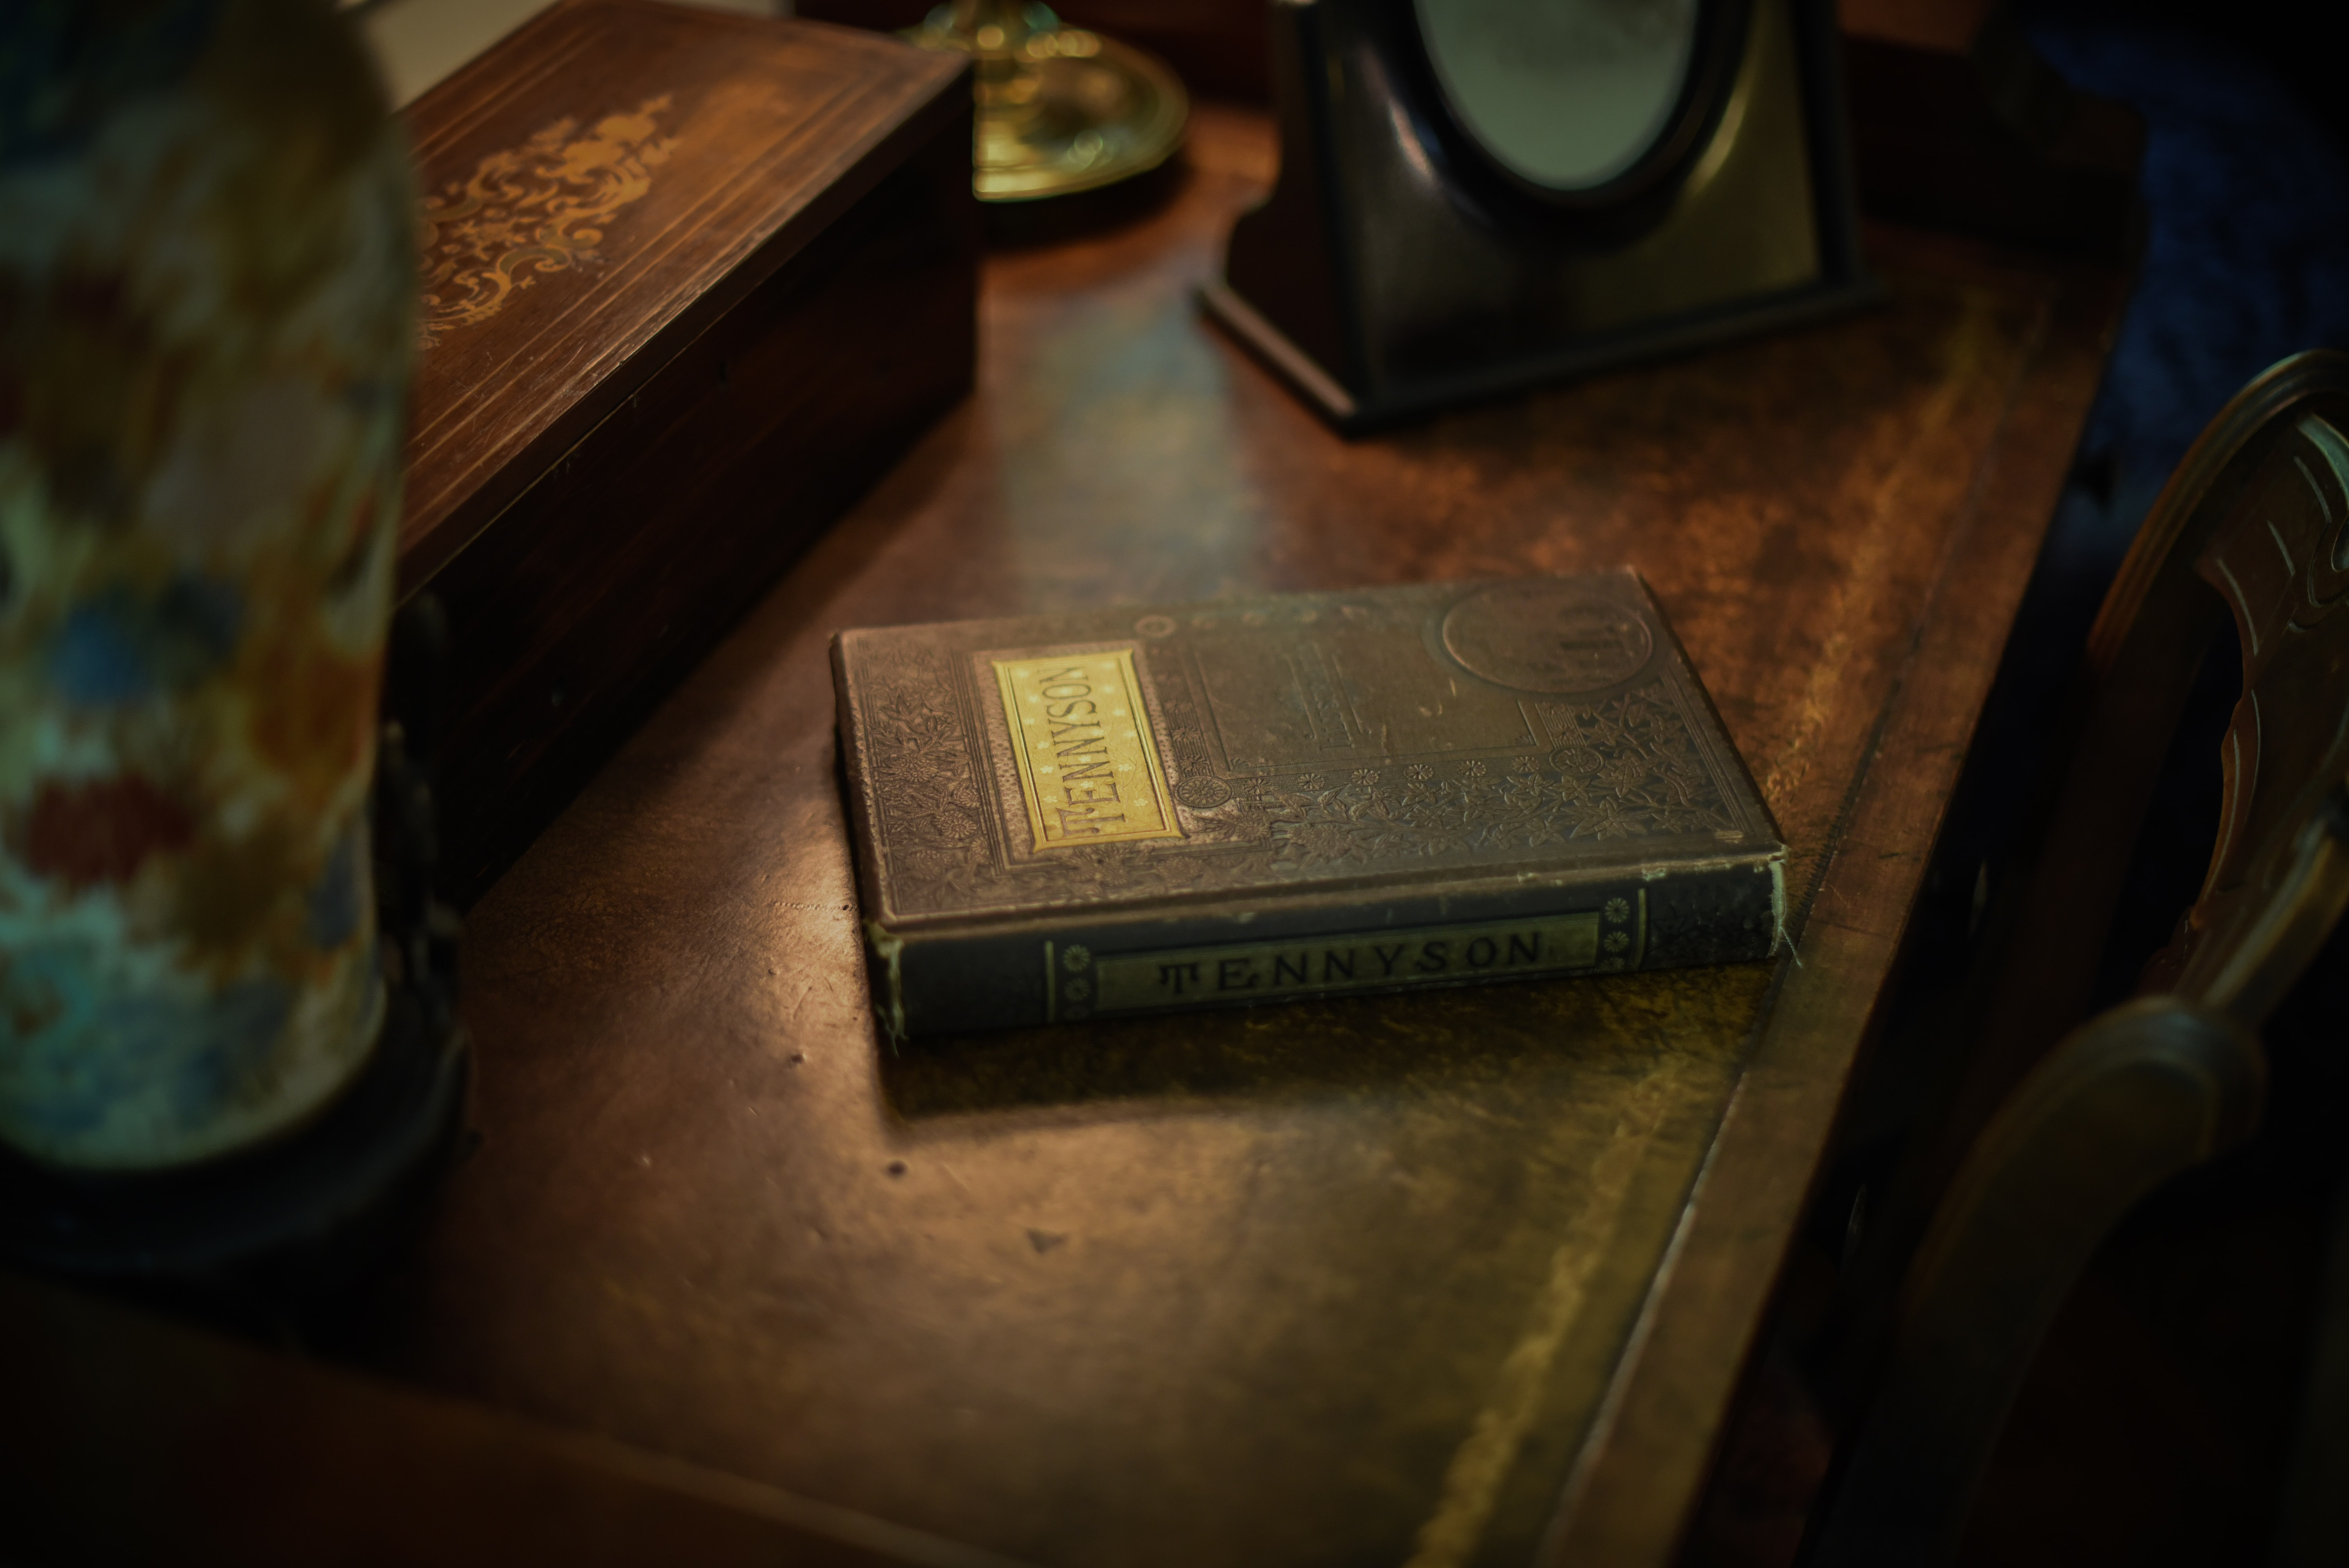 """An old, weathered book with """"Tennyson"""" on the spine and cover sits on a wooden dresser"""